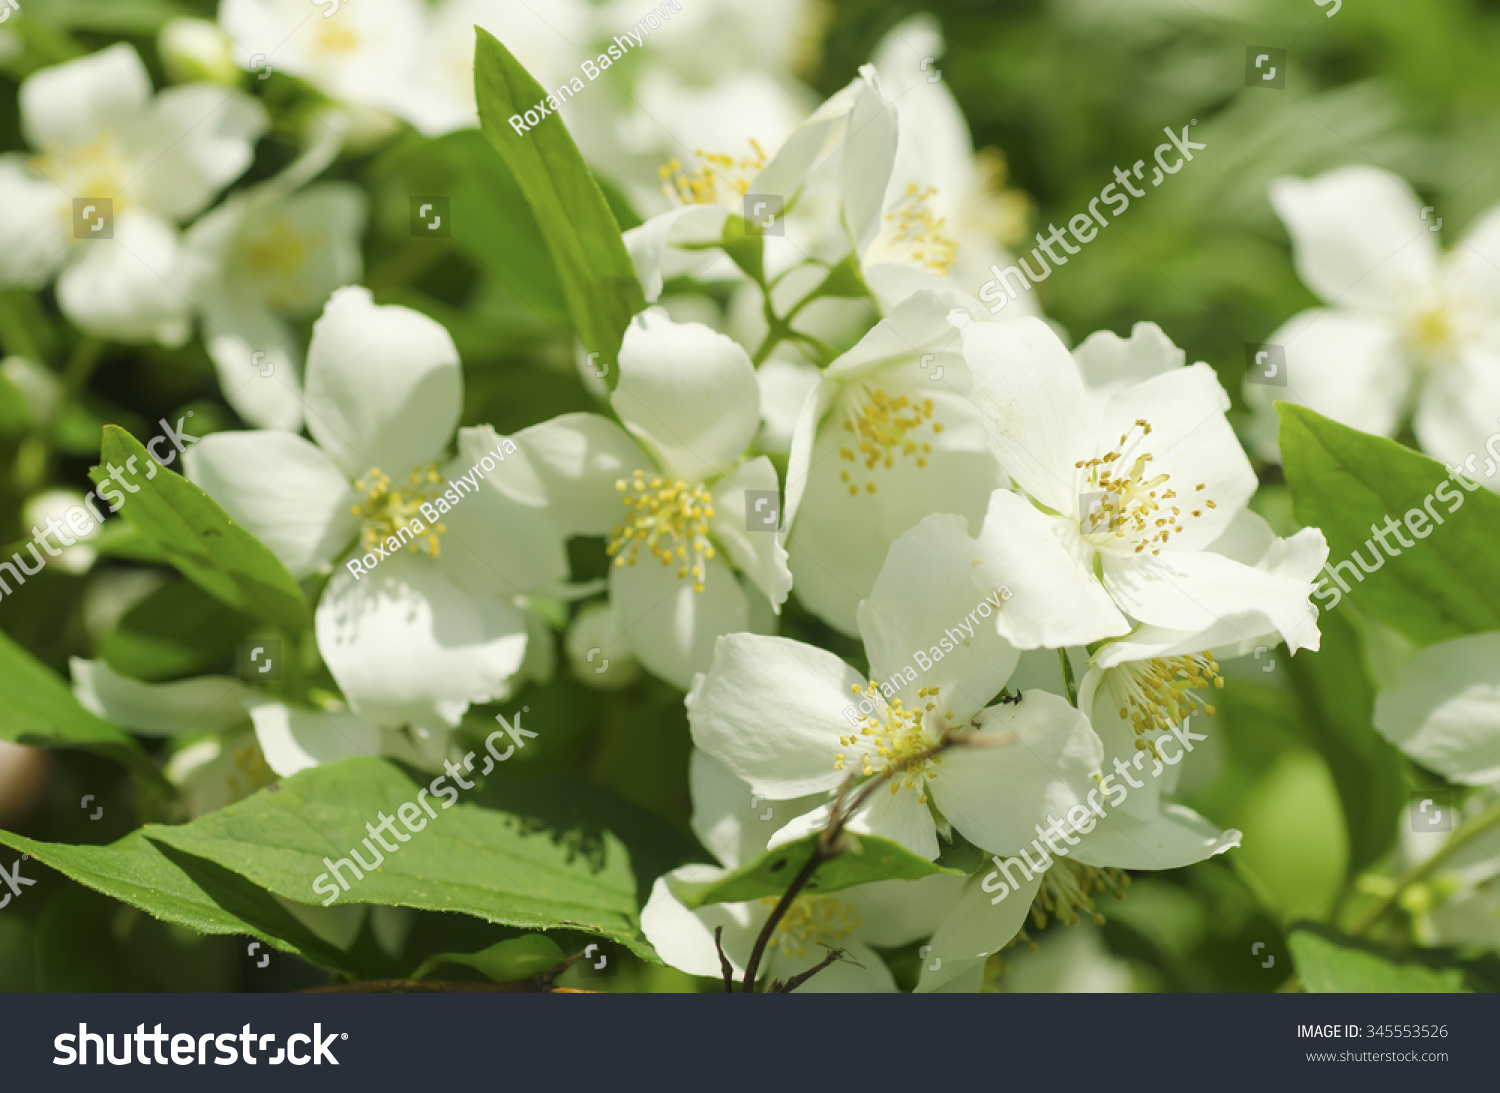 Jasmine flower growing on bush garden stock photo edit now jasmine flower growing on the bush in garden natural floral background izmirmasajfo